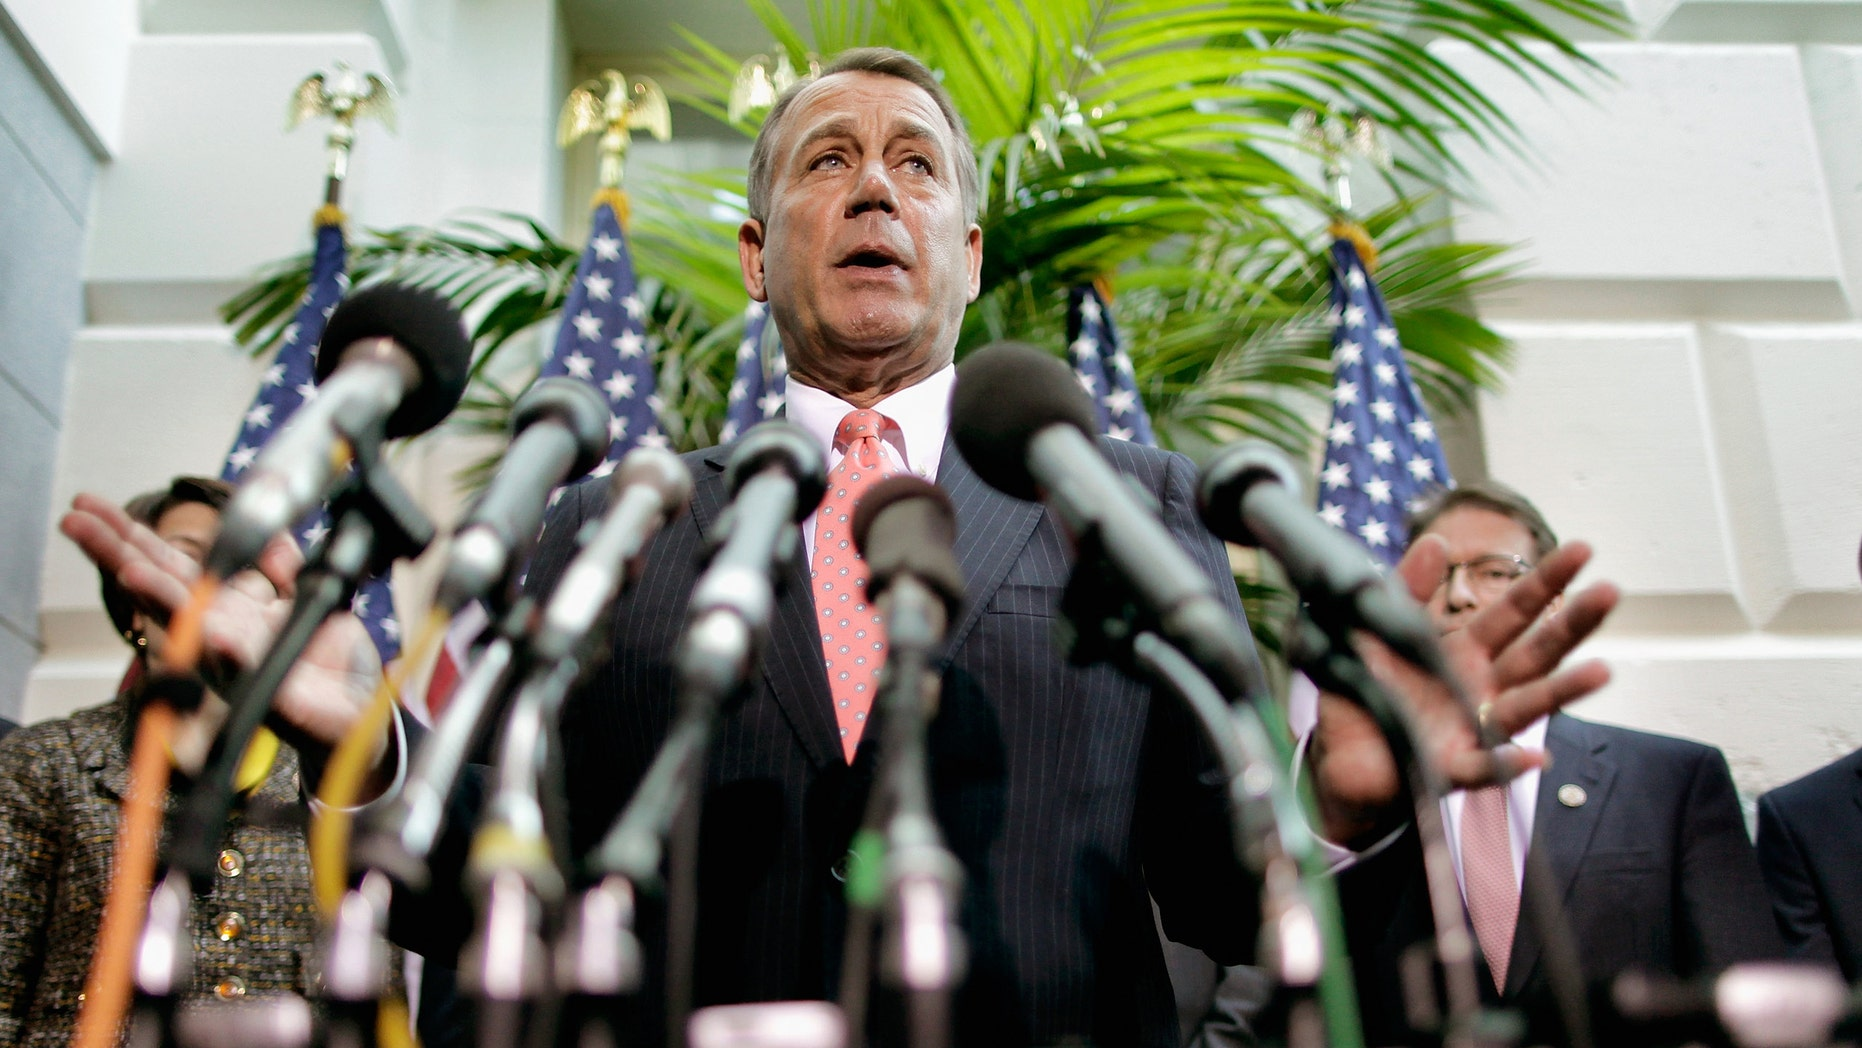 Speaker of the House John Boehner (R-OH) (C) is joined by other members of the House GOP leadership.